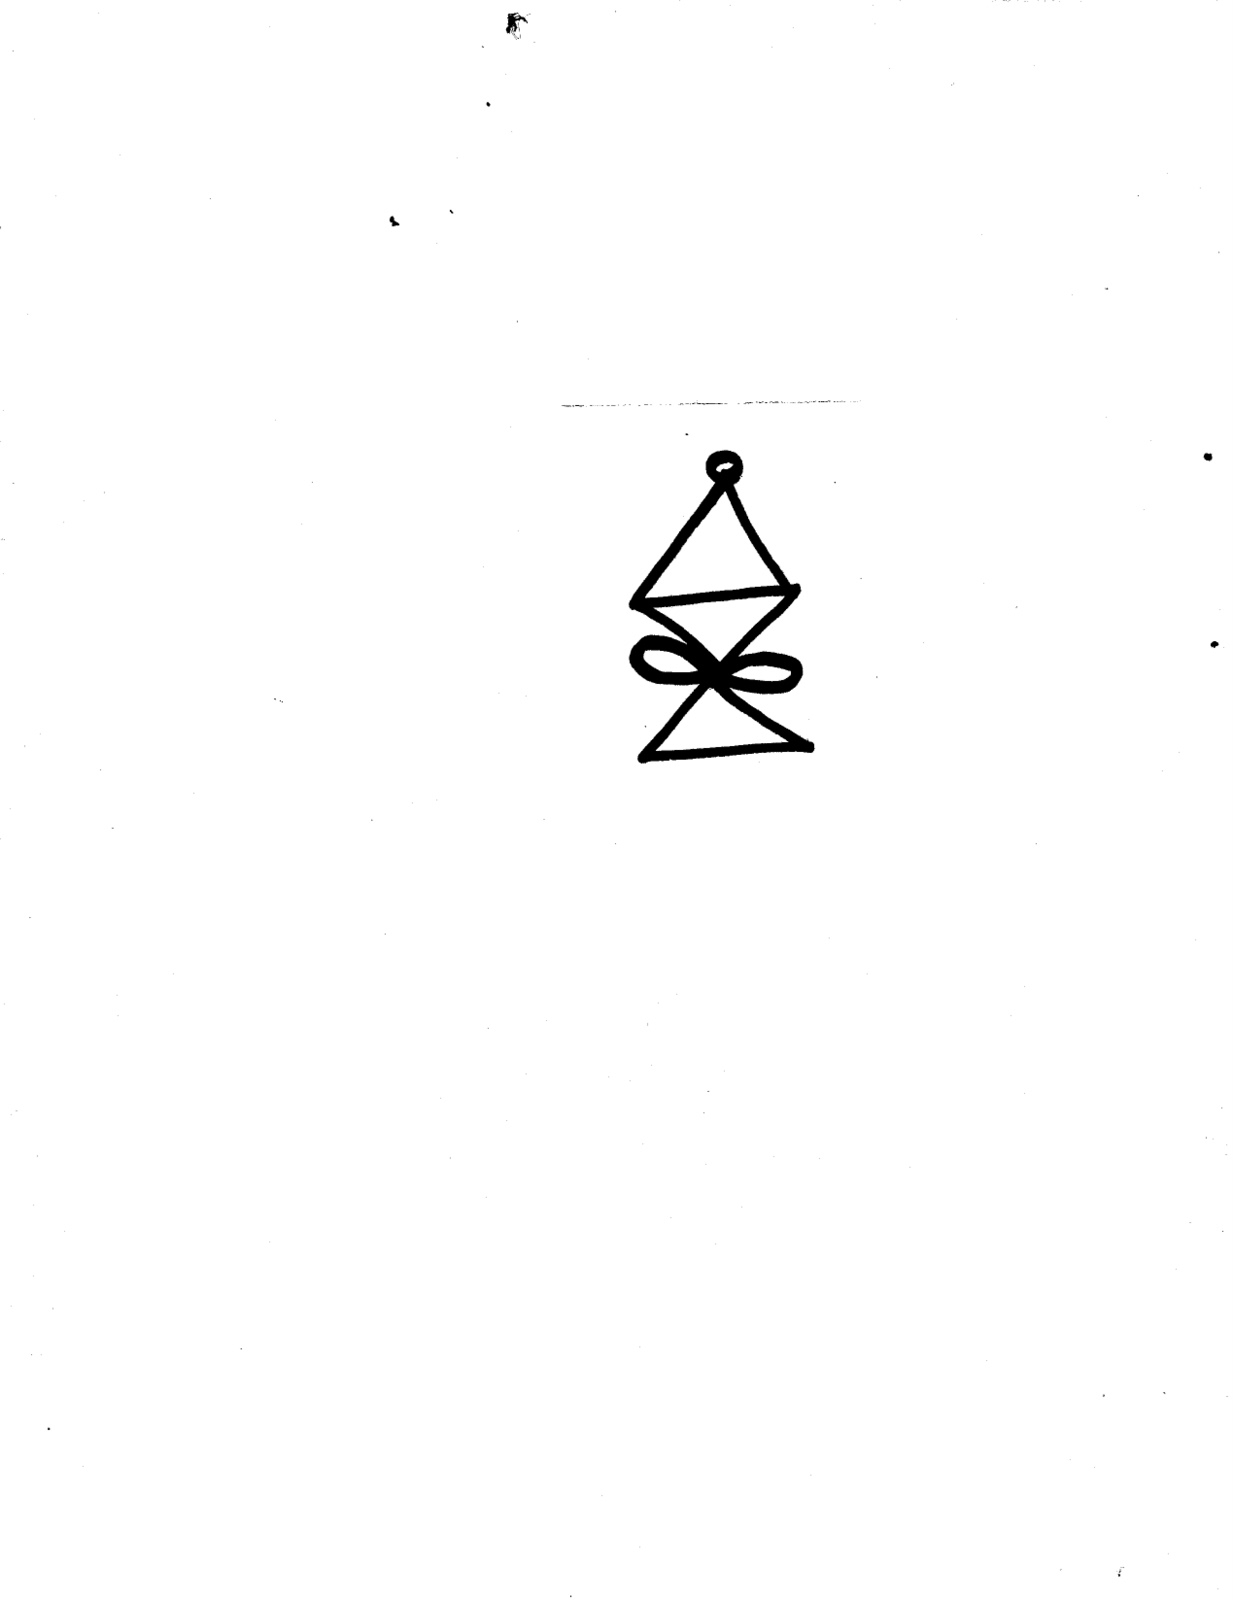 Reiki symbols their uses reiki entire yazara it is a clearing symbol for machinery car computers etc to remove their negativity and unseen problems use it on car if held up in a traffic biocorpaavc